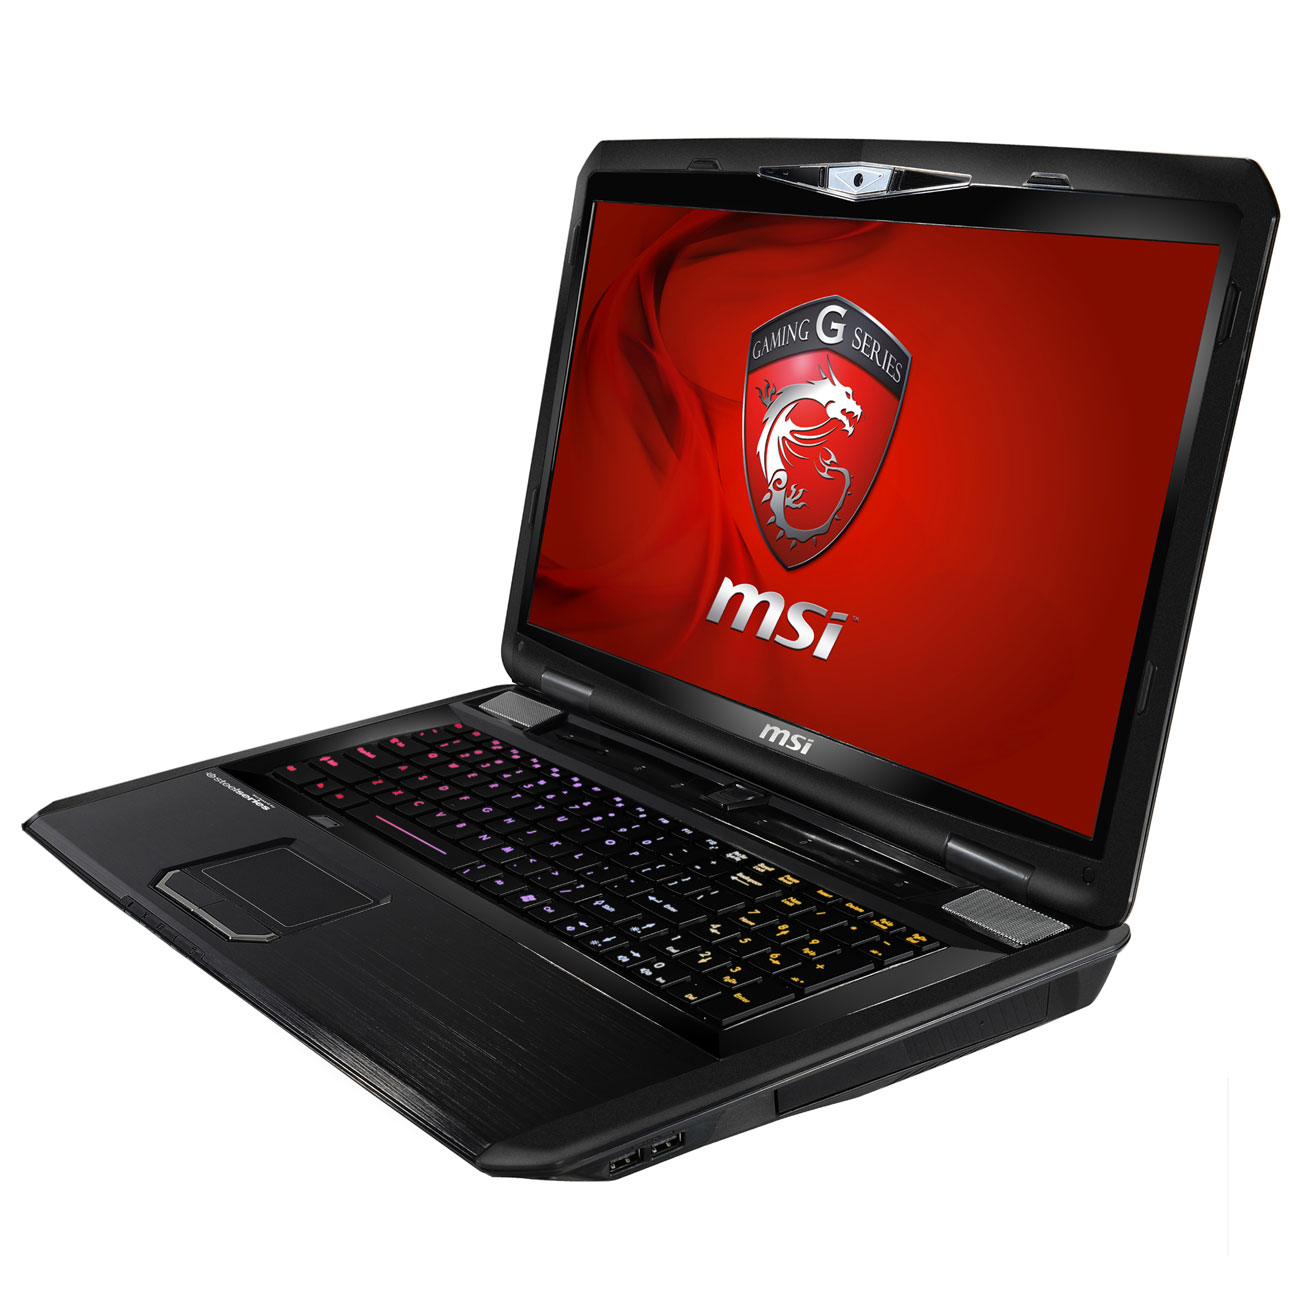 "PC portable MSI GT70 2OC-025FR Intel Core i7-4700MQ 8 Go 750 Go 17.3"" LED NVIDIA GeForce GTX 770M Graveur DVD Wi-Fi N/Bluetooth Webcam Windows 8 (garantie constructeur 2 ans)"